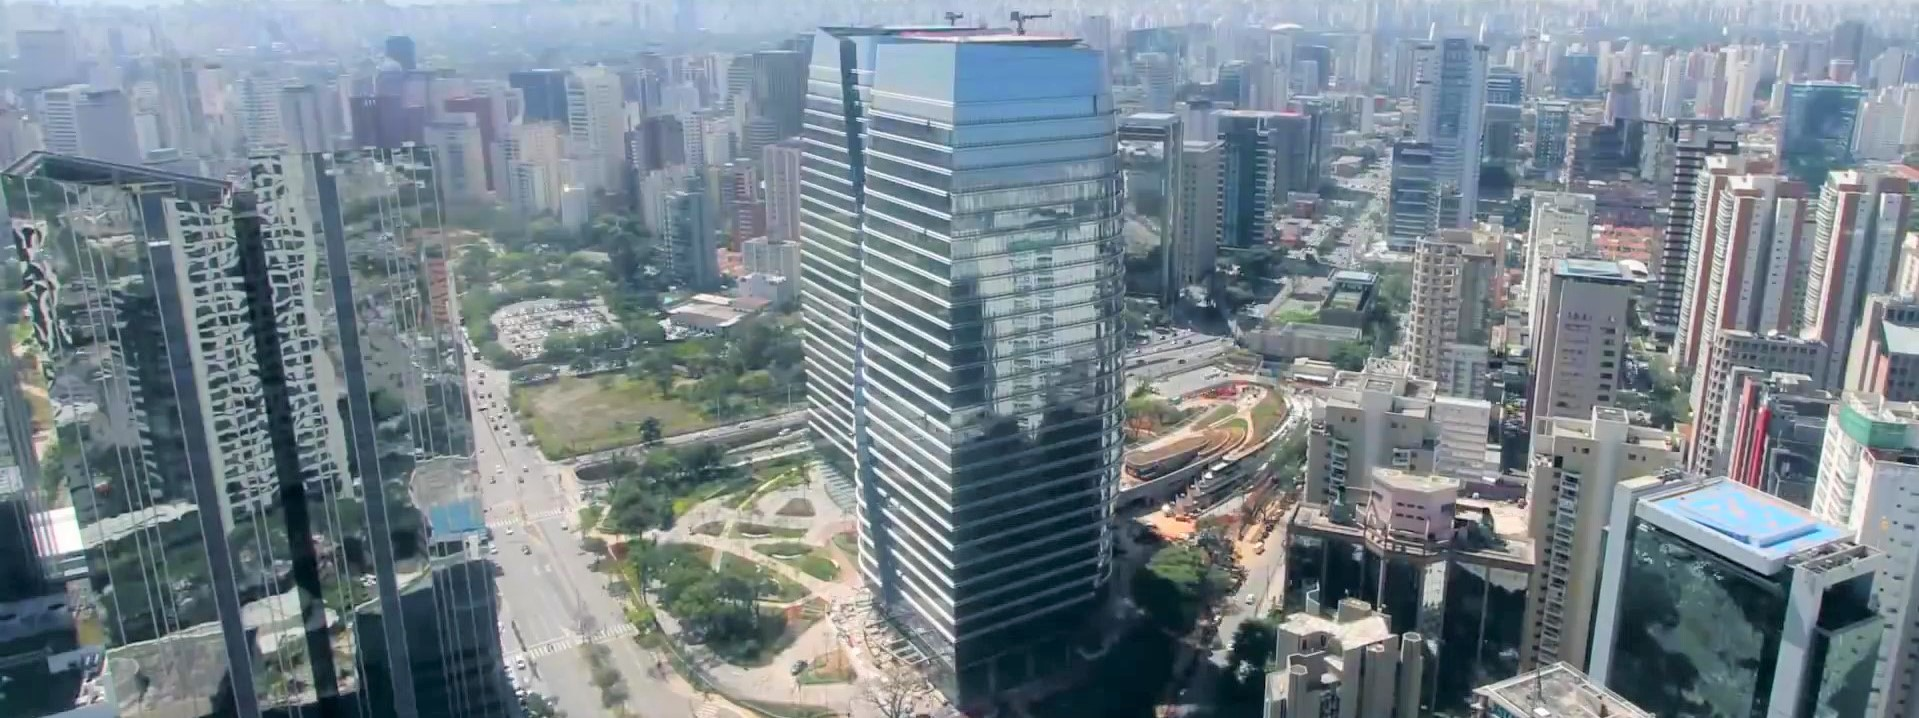 sp corporate towers_Moment (3)